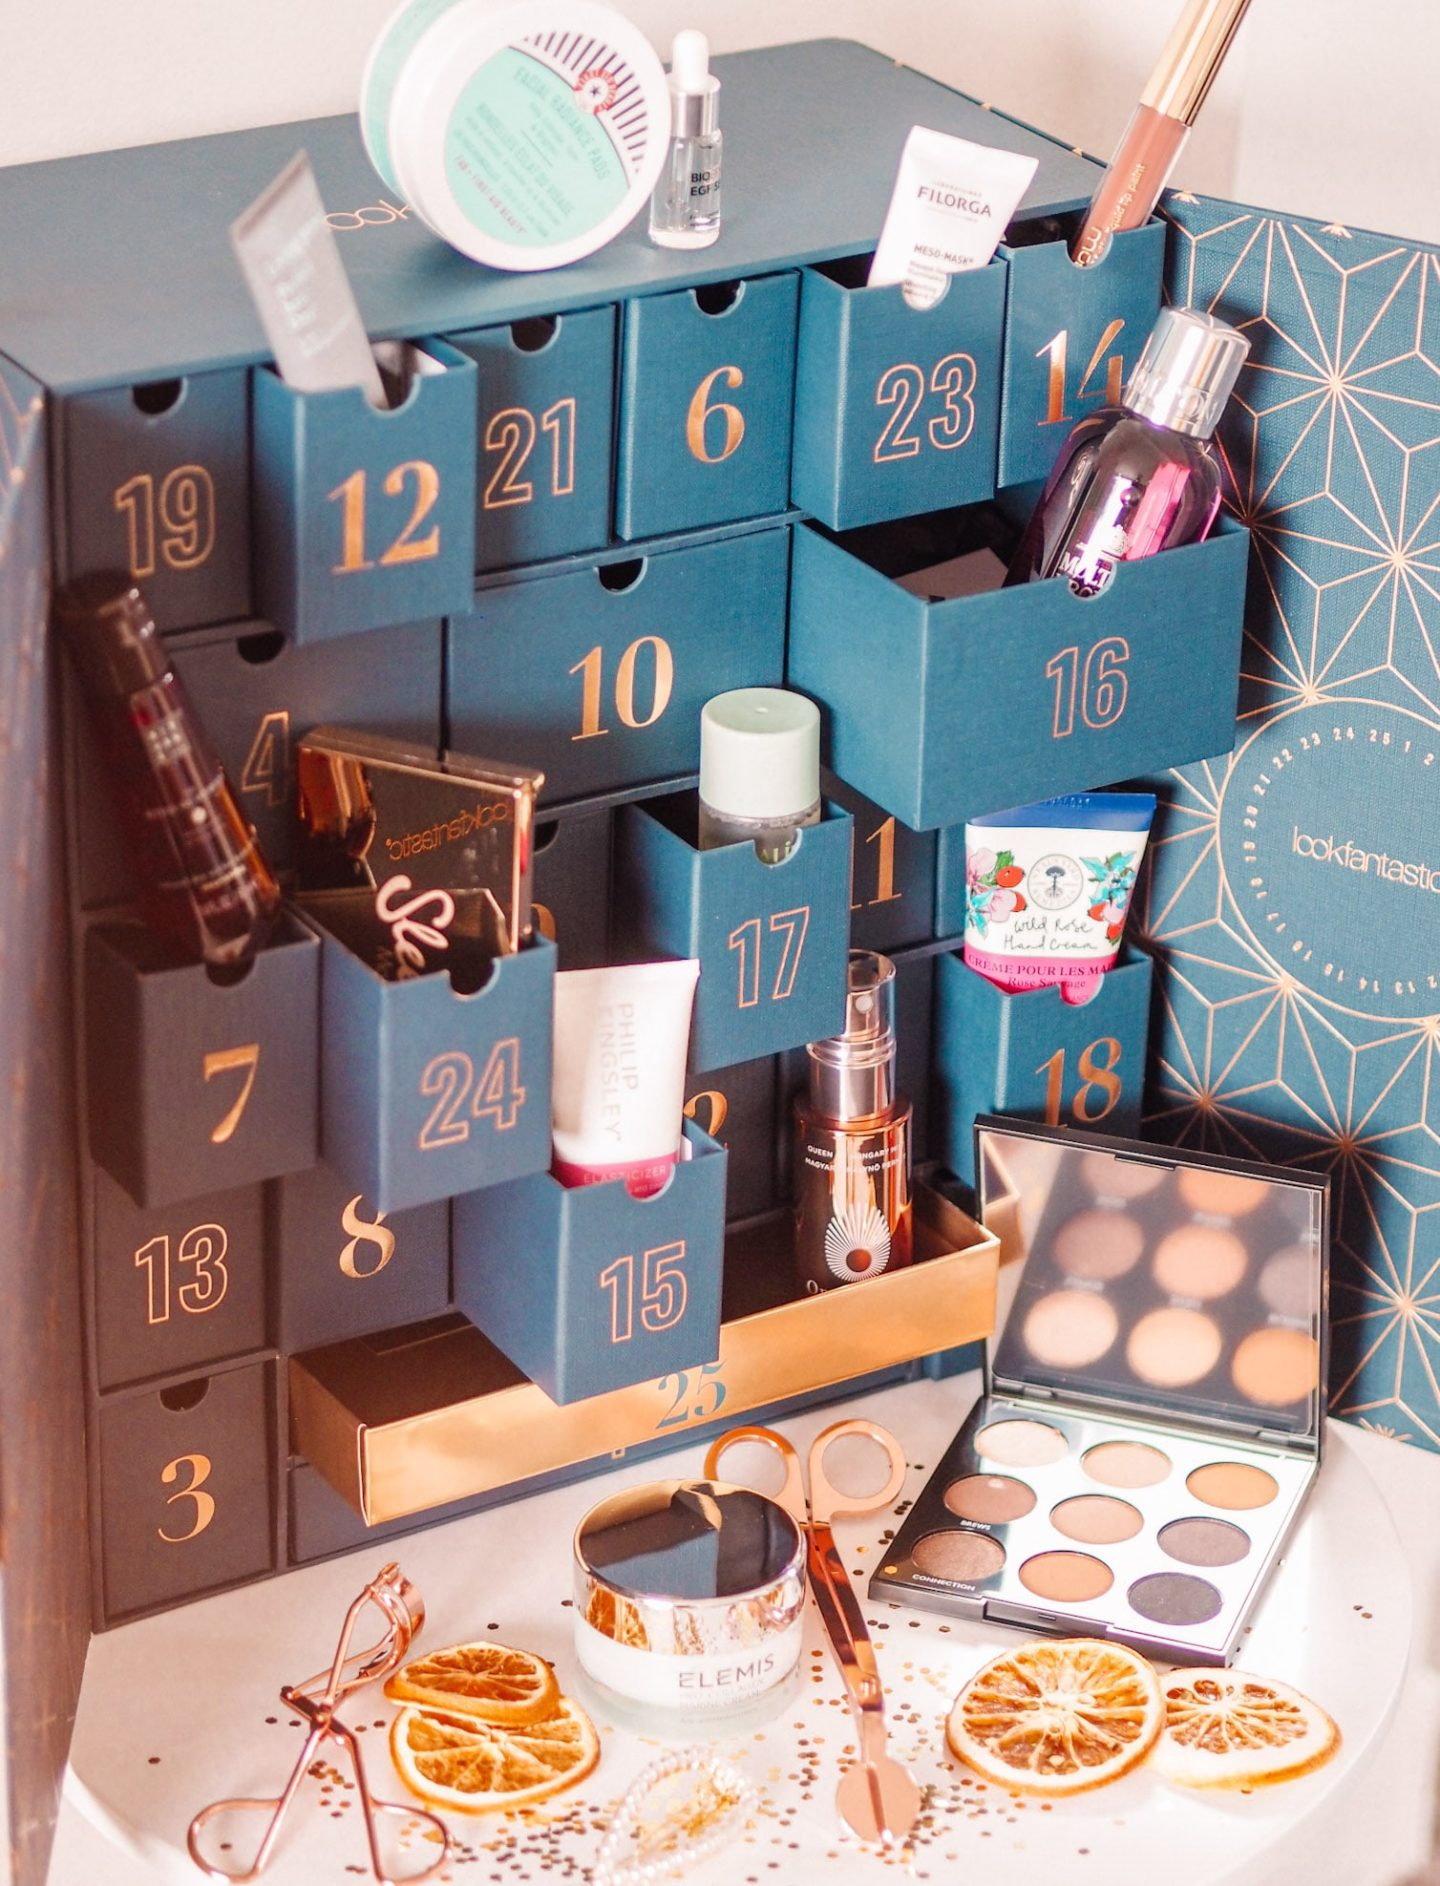 lookfantastic Advent Calendar 2019 contents and review